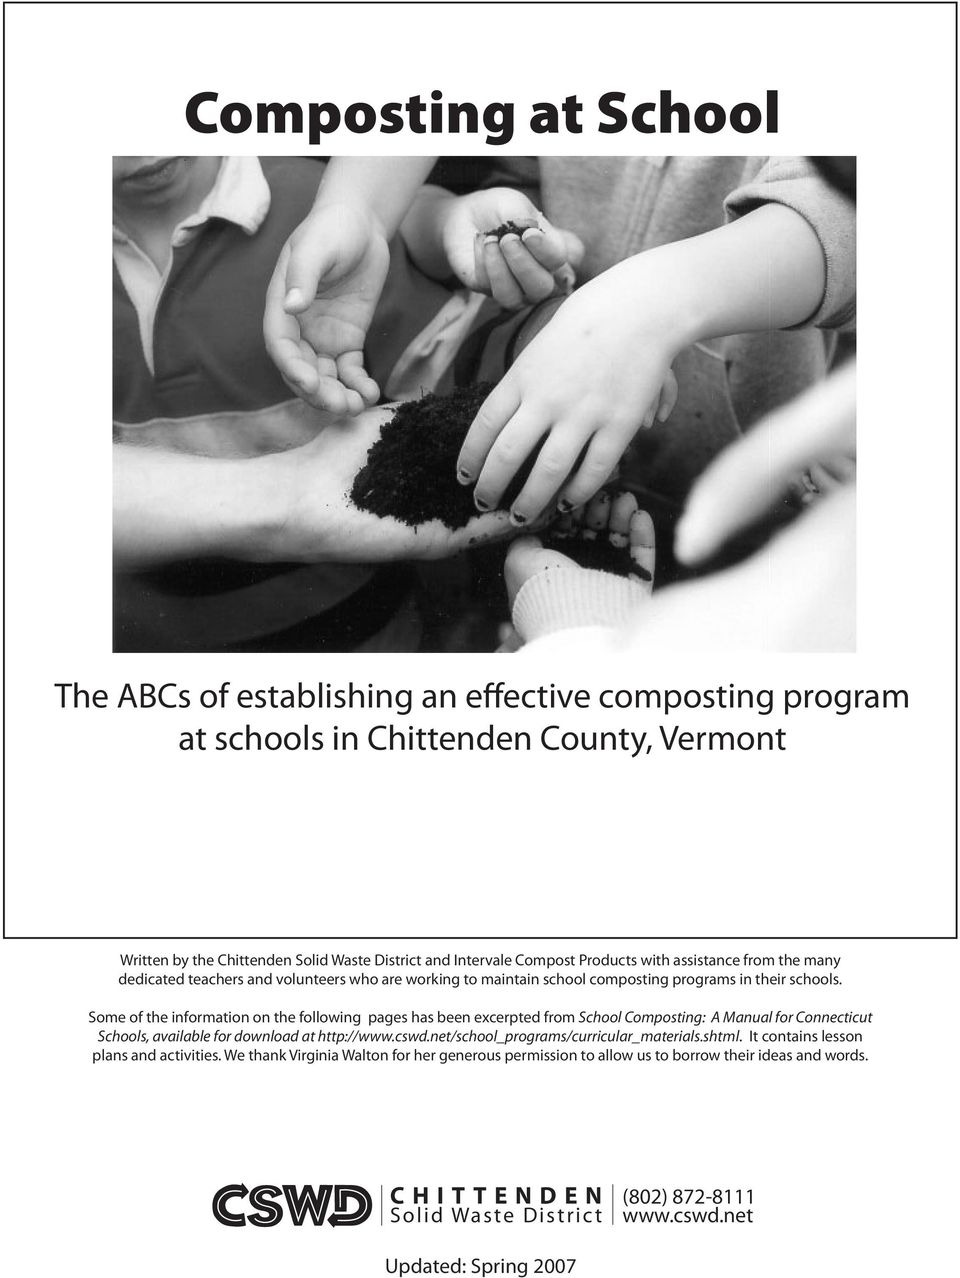 Some of the information on the following pages has been excerpted from School Composting: A Manual for Connecticut Schools, available for download at http://www.cswd.